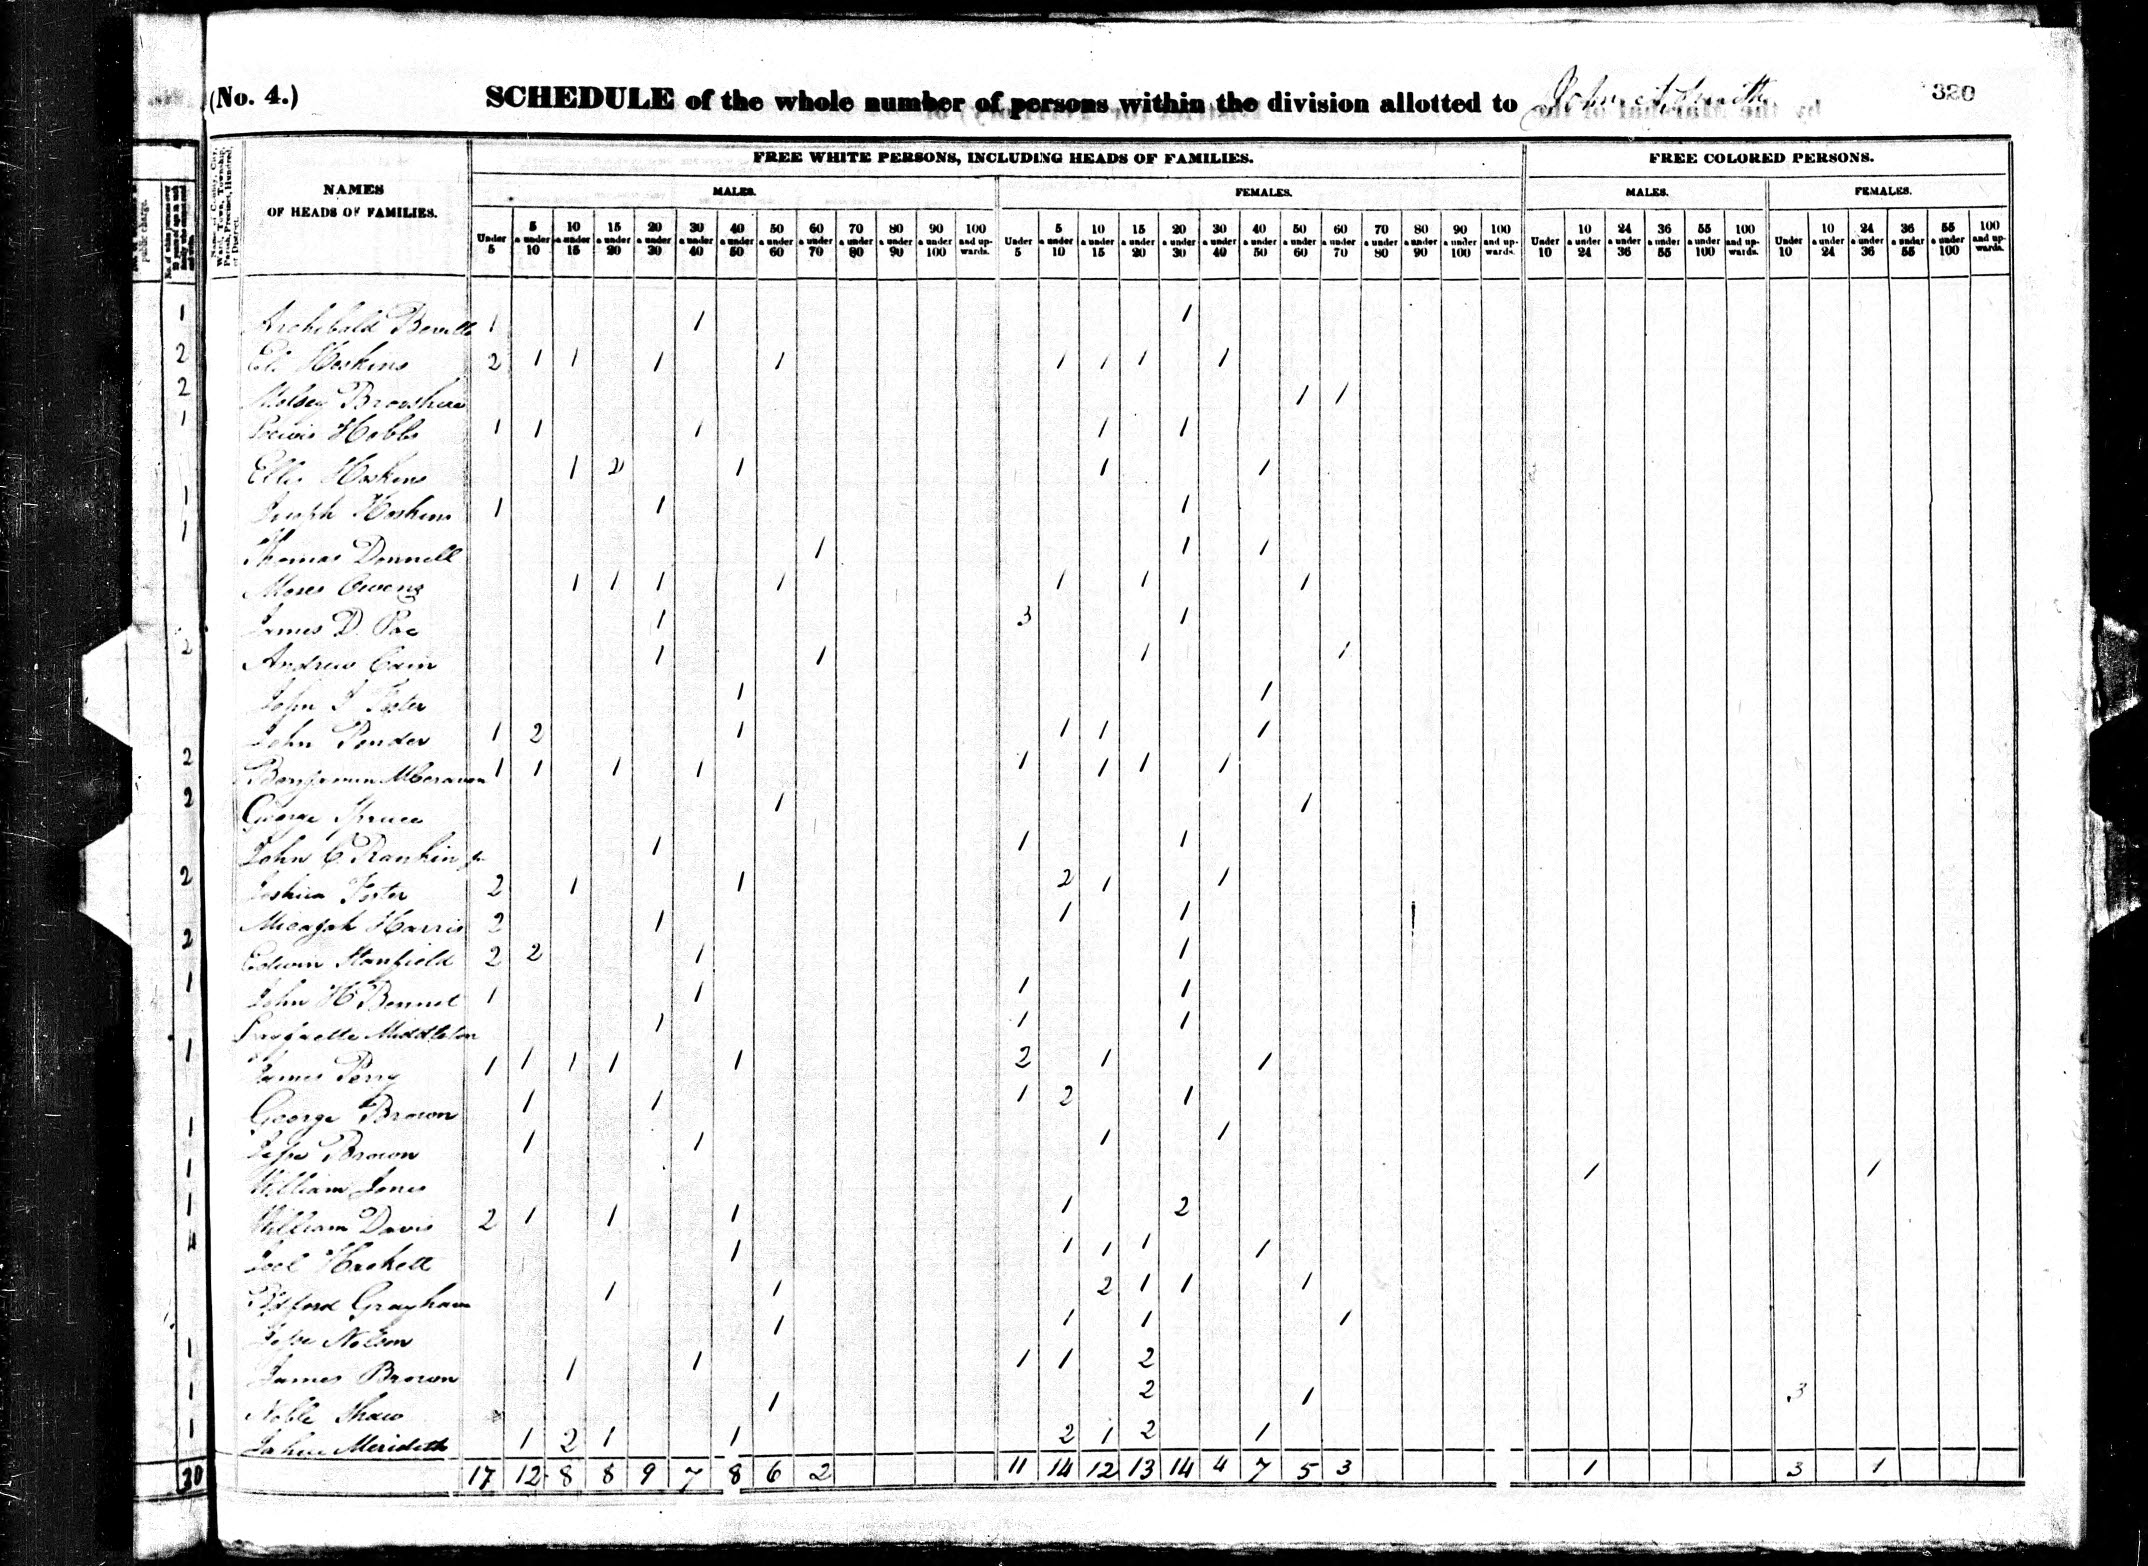 1840 U.S. Federal Census for Layfaette Middleton in Guilford County, North Carolina